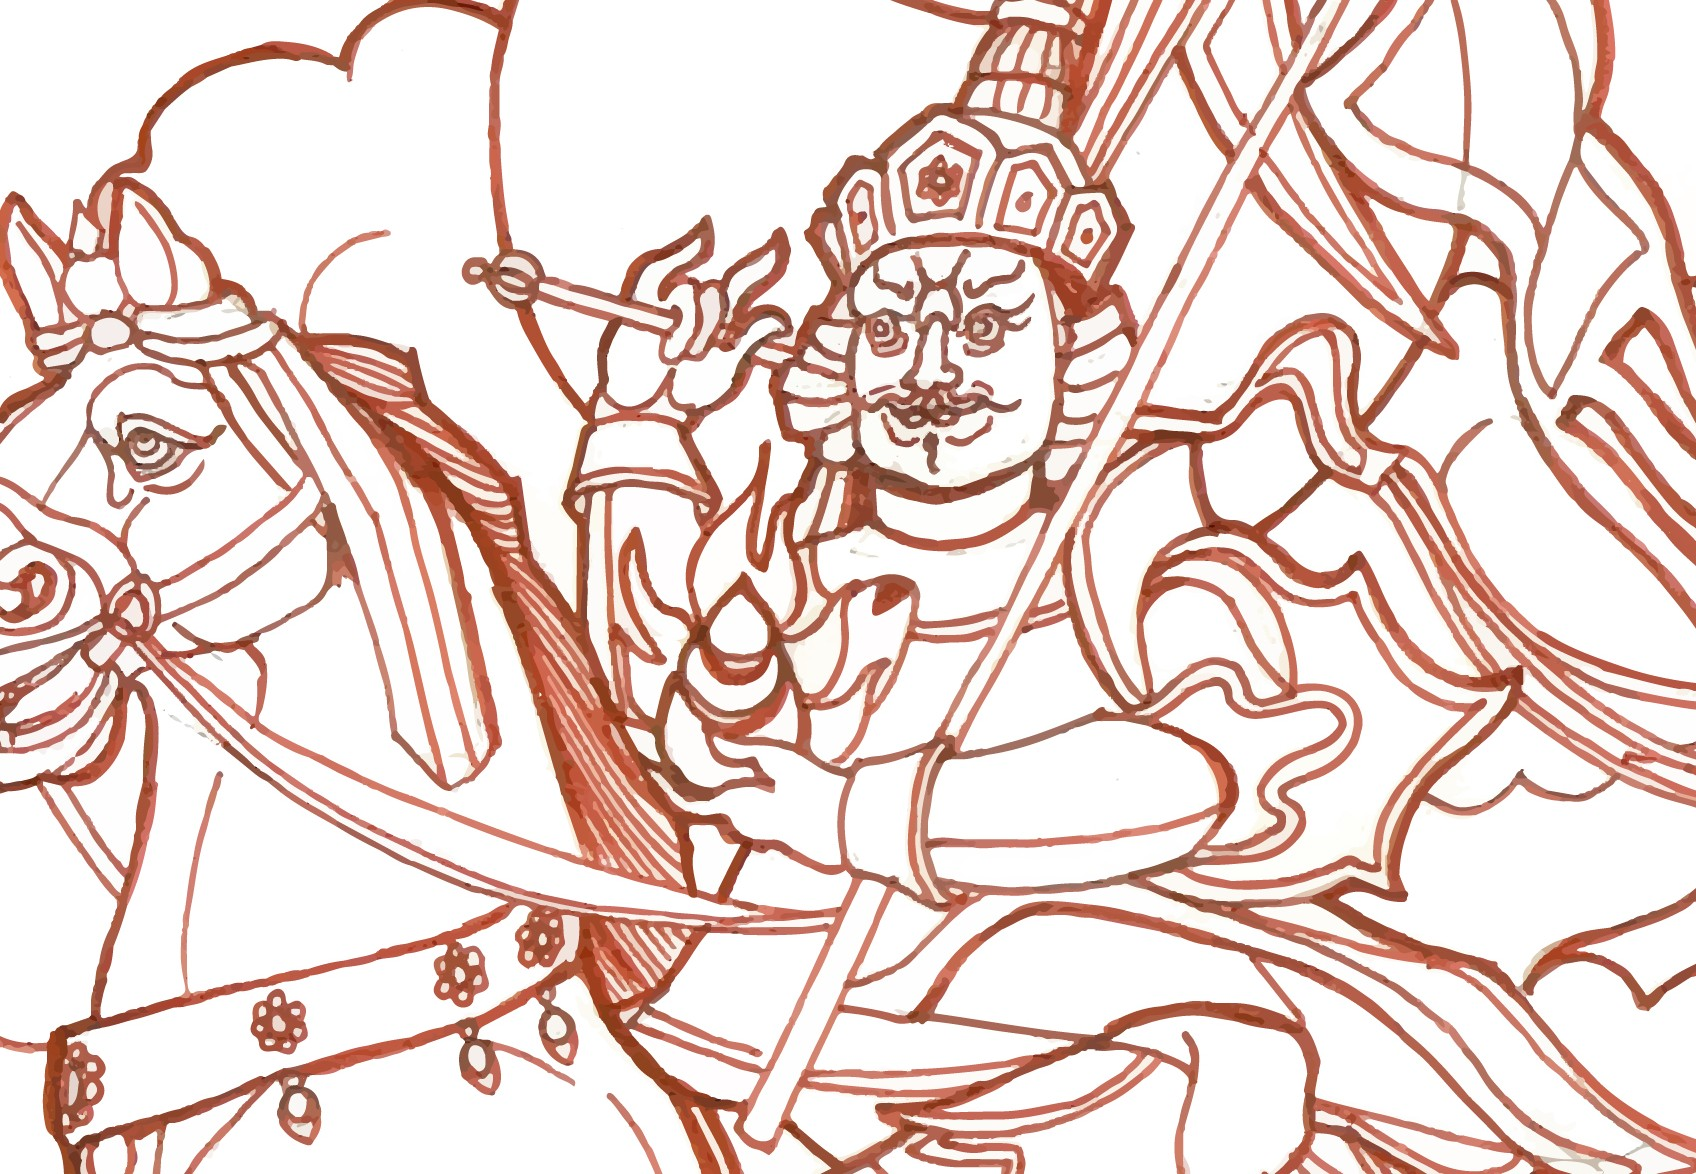 Illustration of Gesar